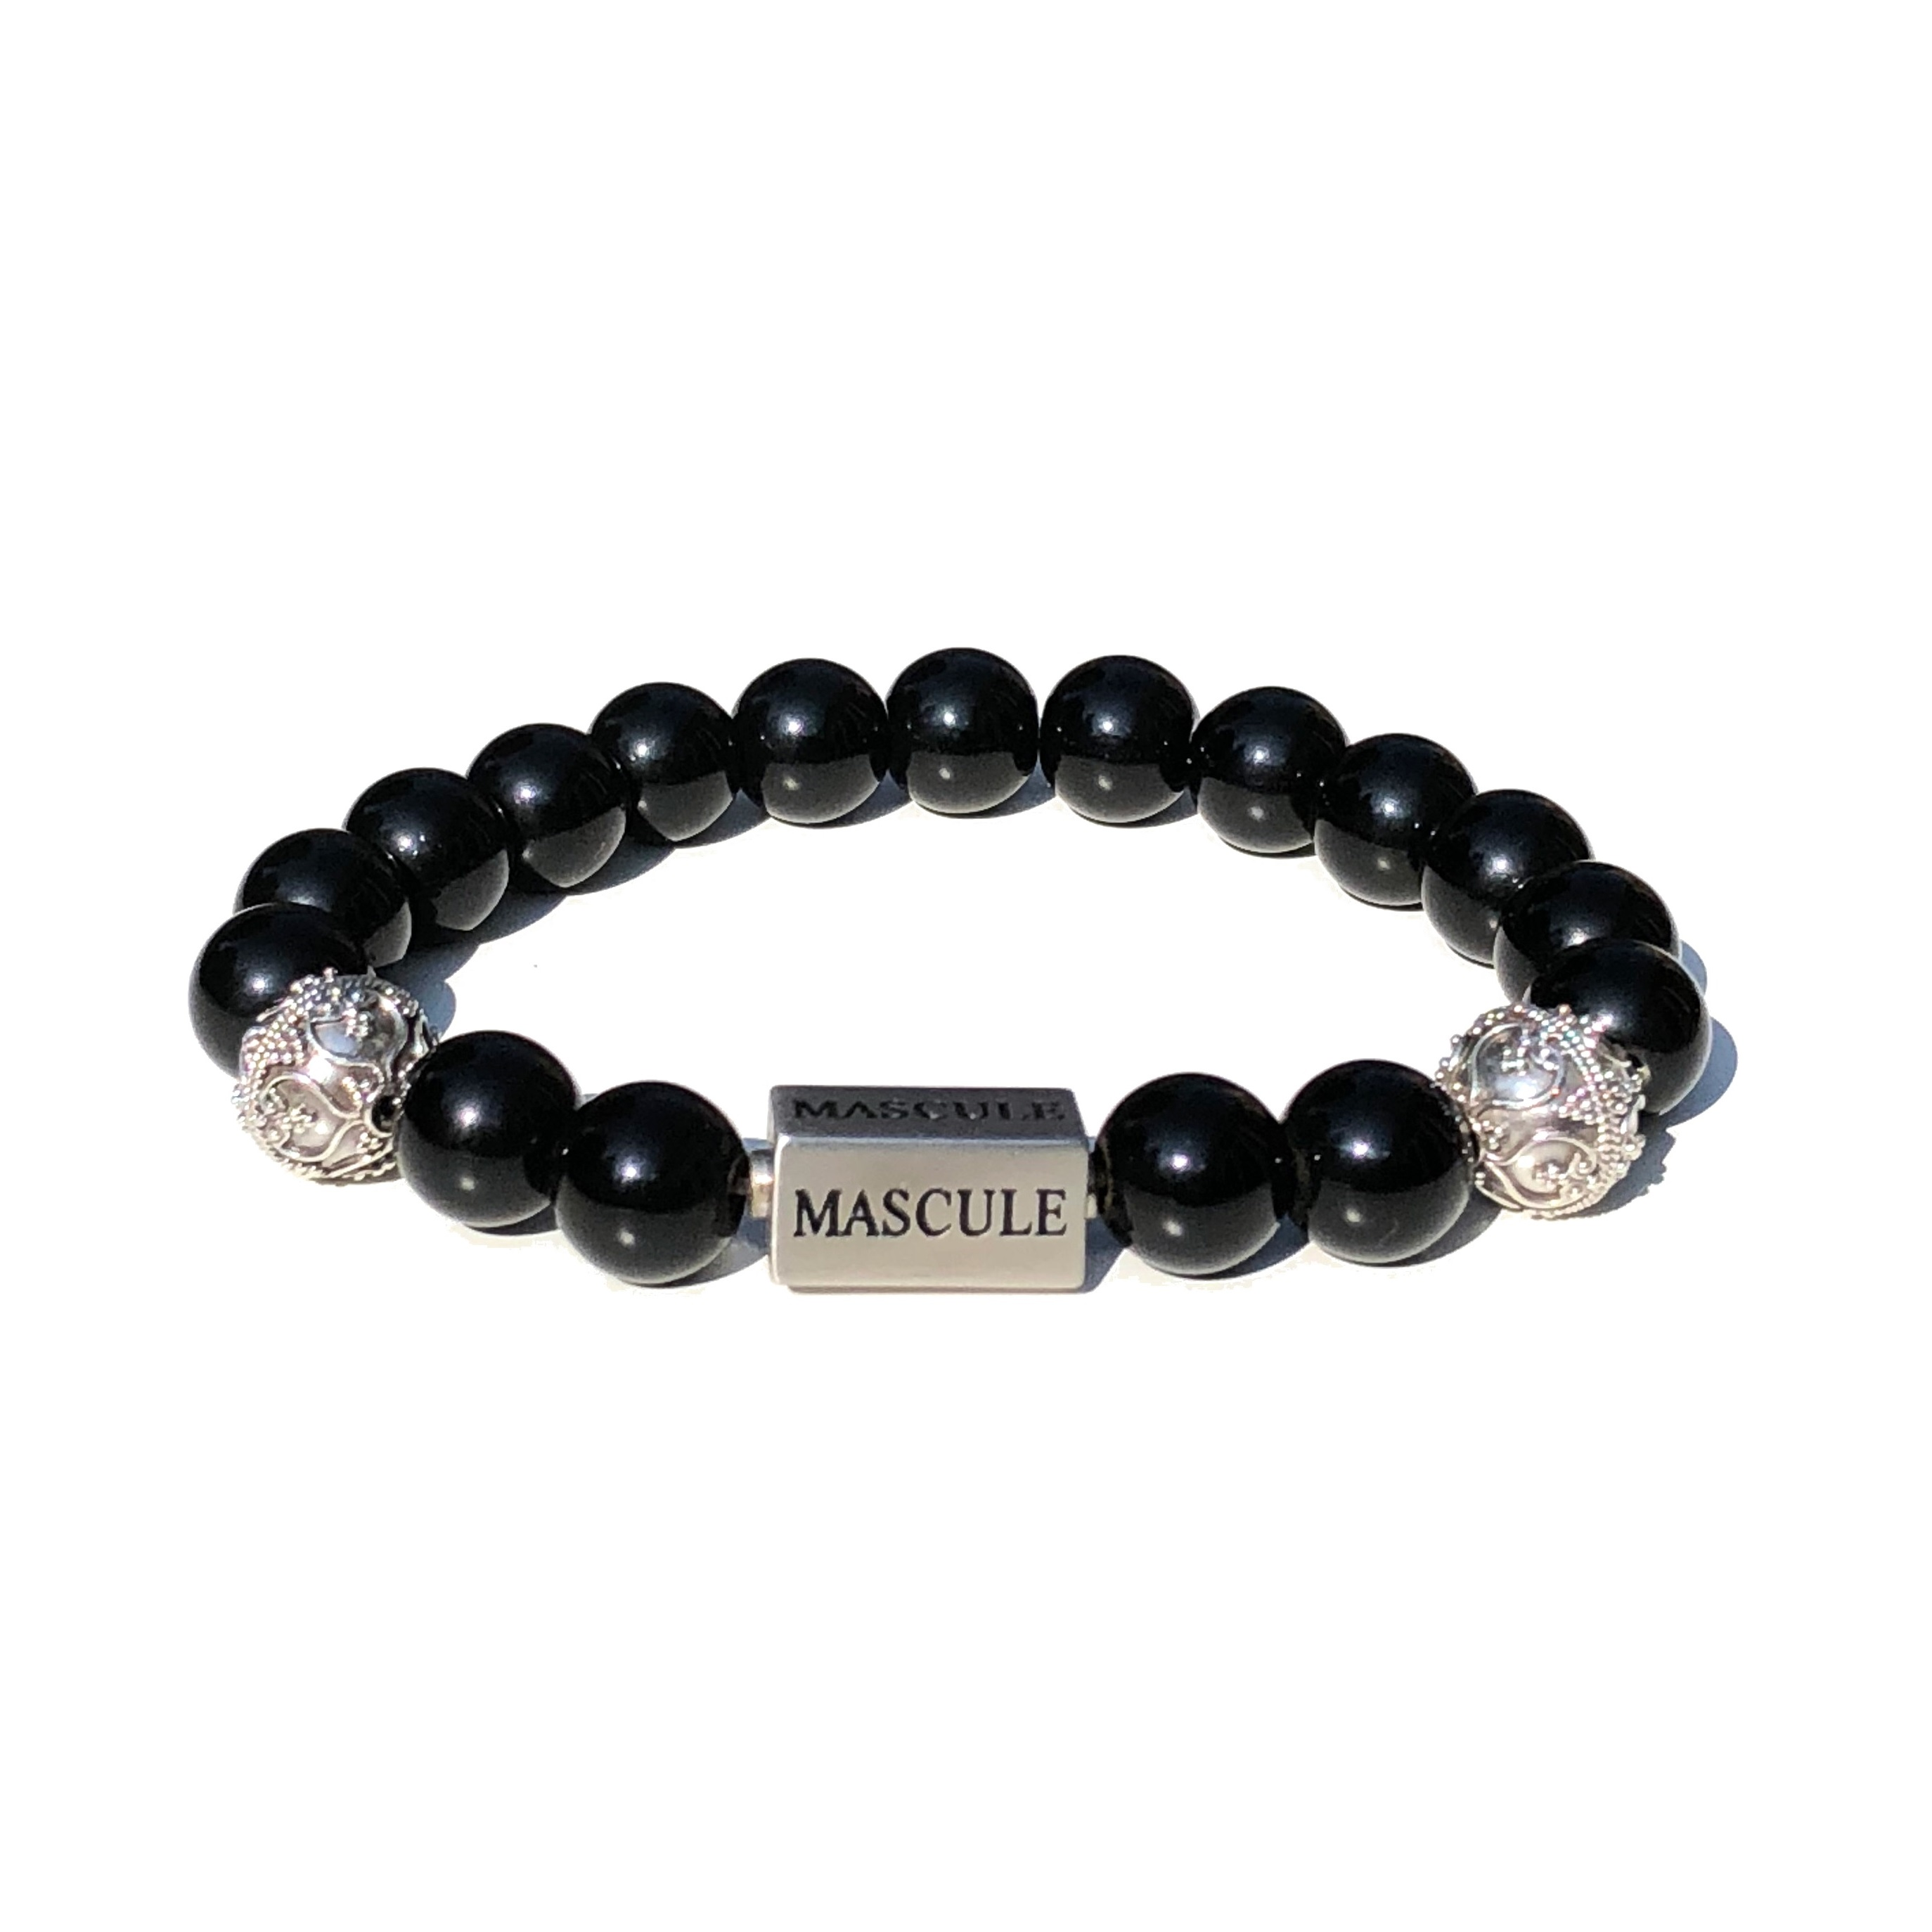 Mens Beaded Bracelet - MAS8106-Argentum-Intense-10mm_final.jpg